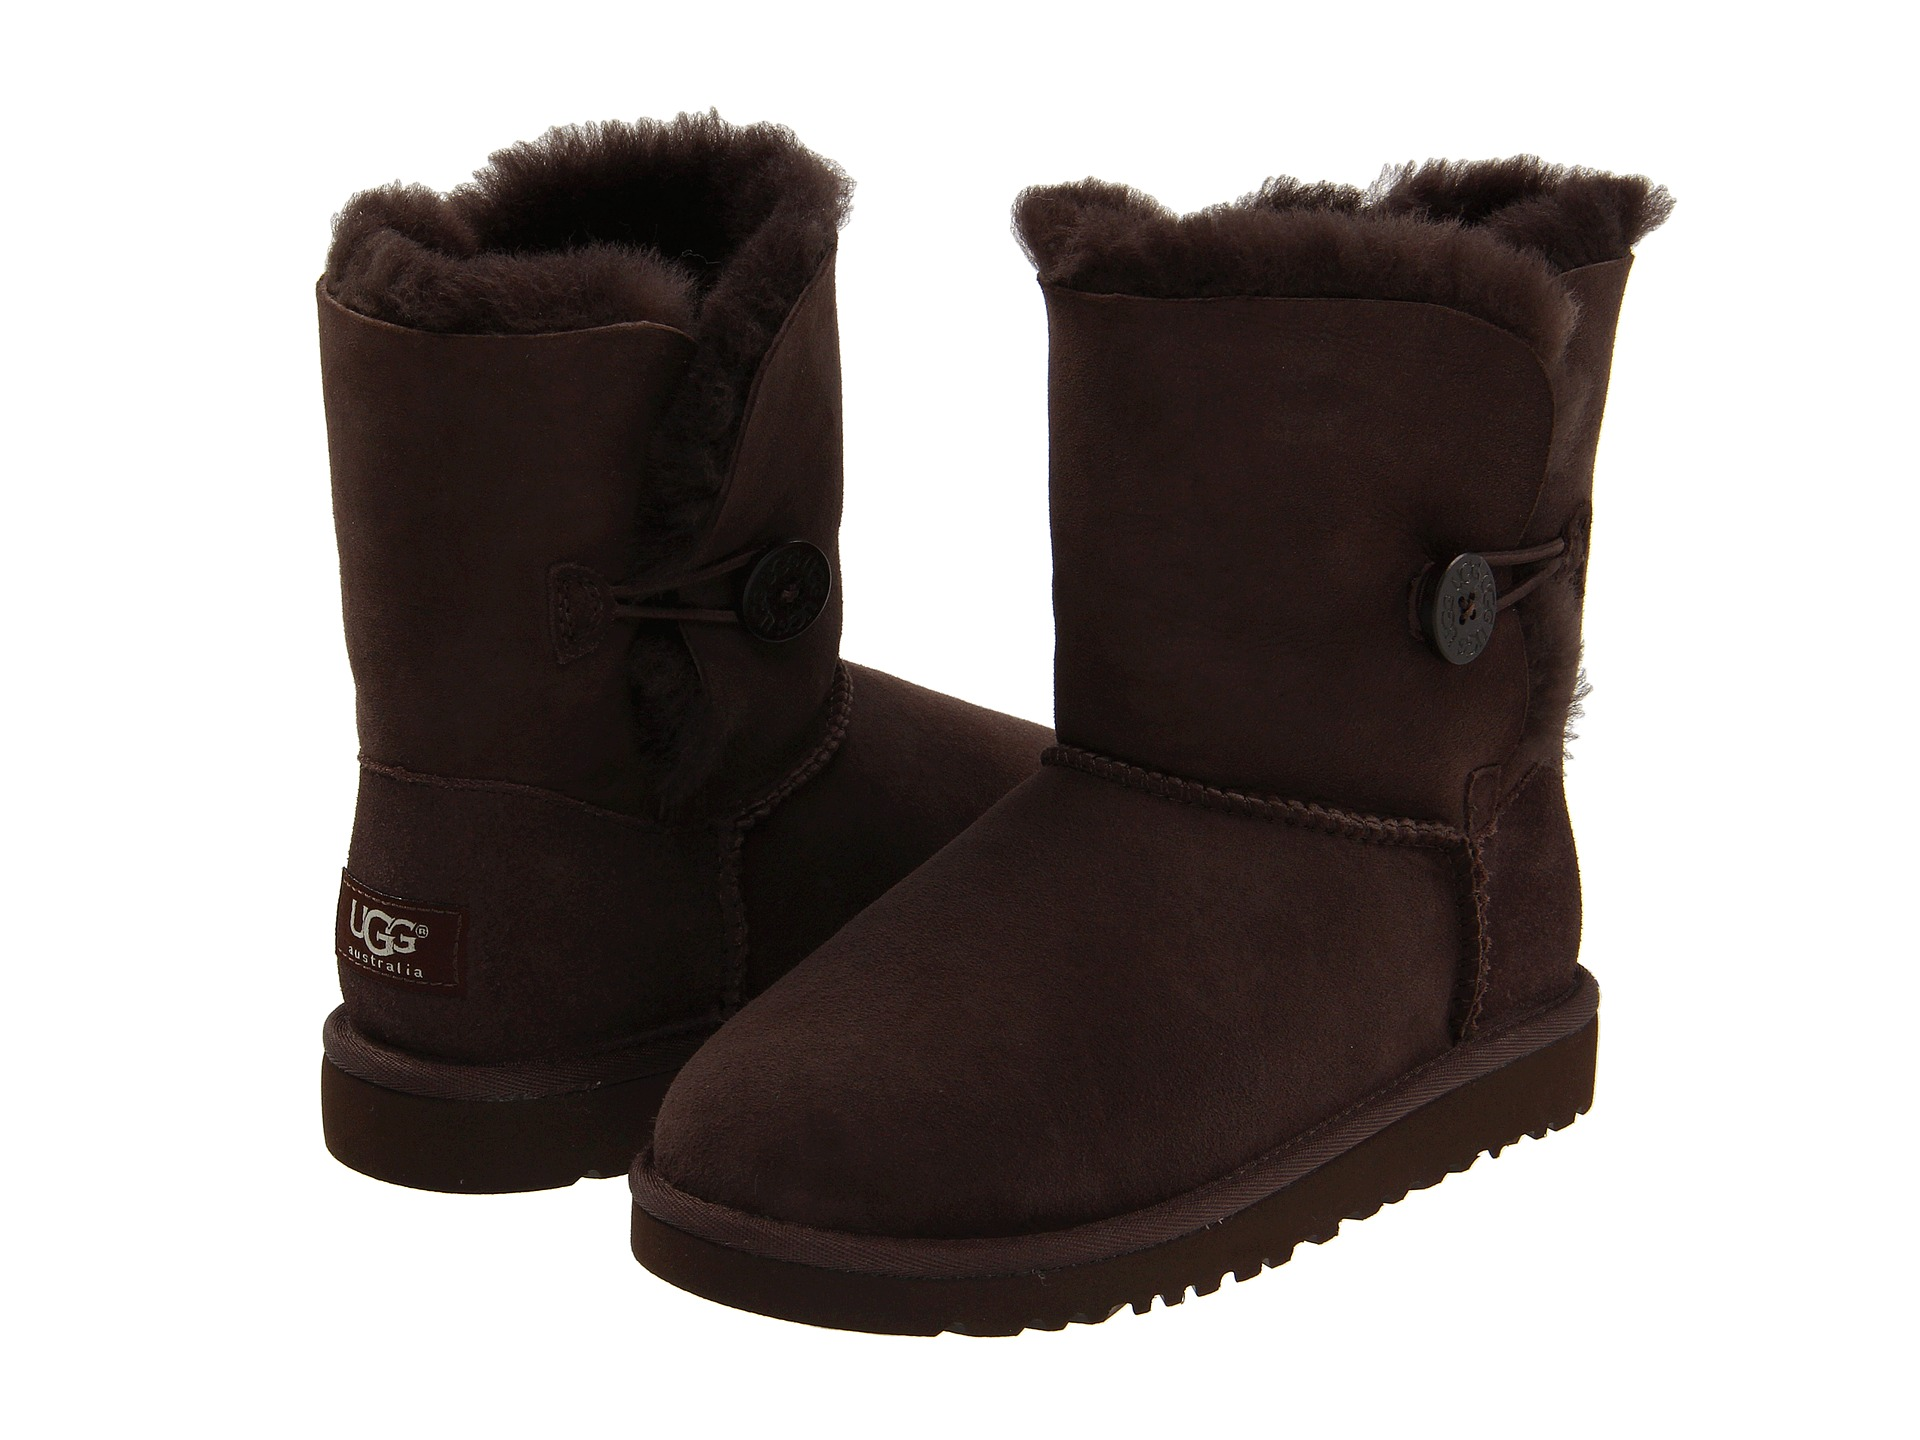 ugg slippers coupon code